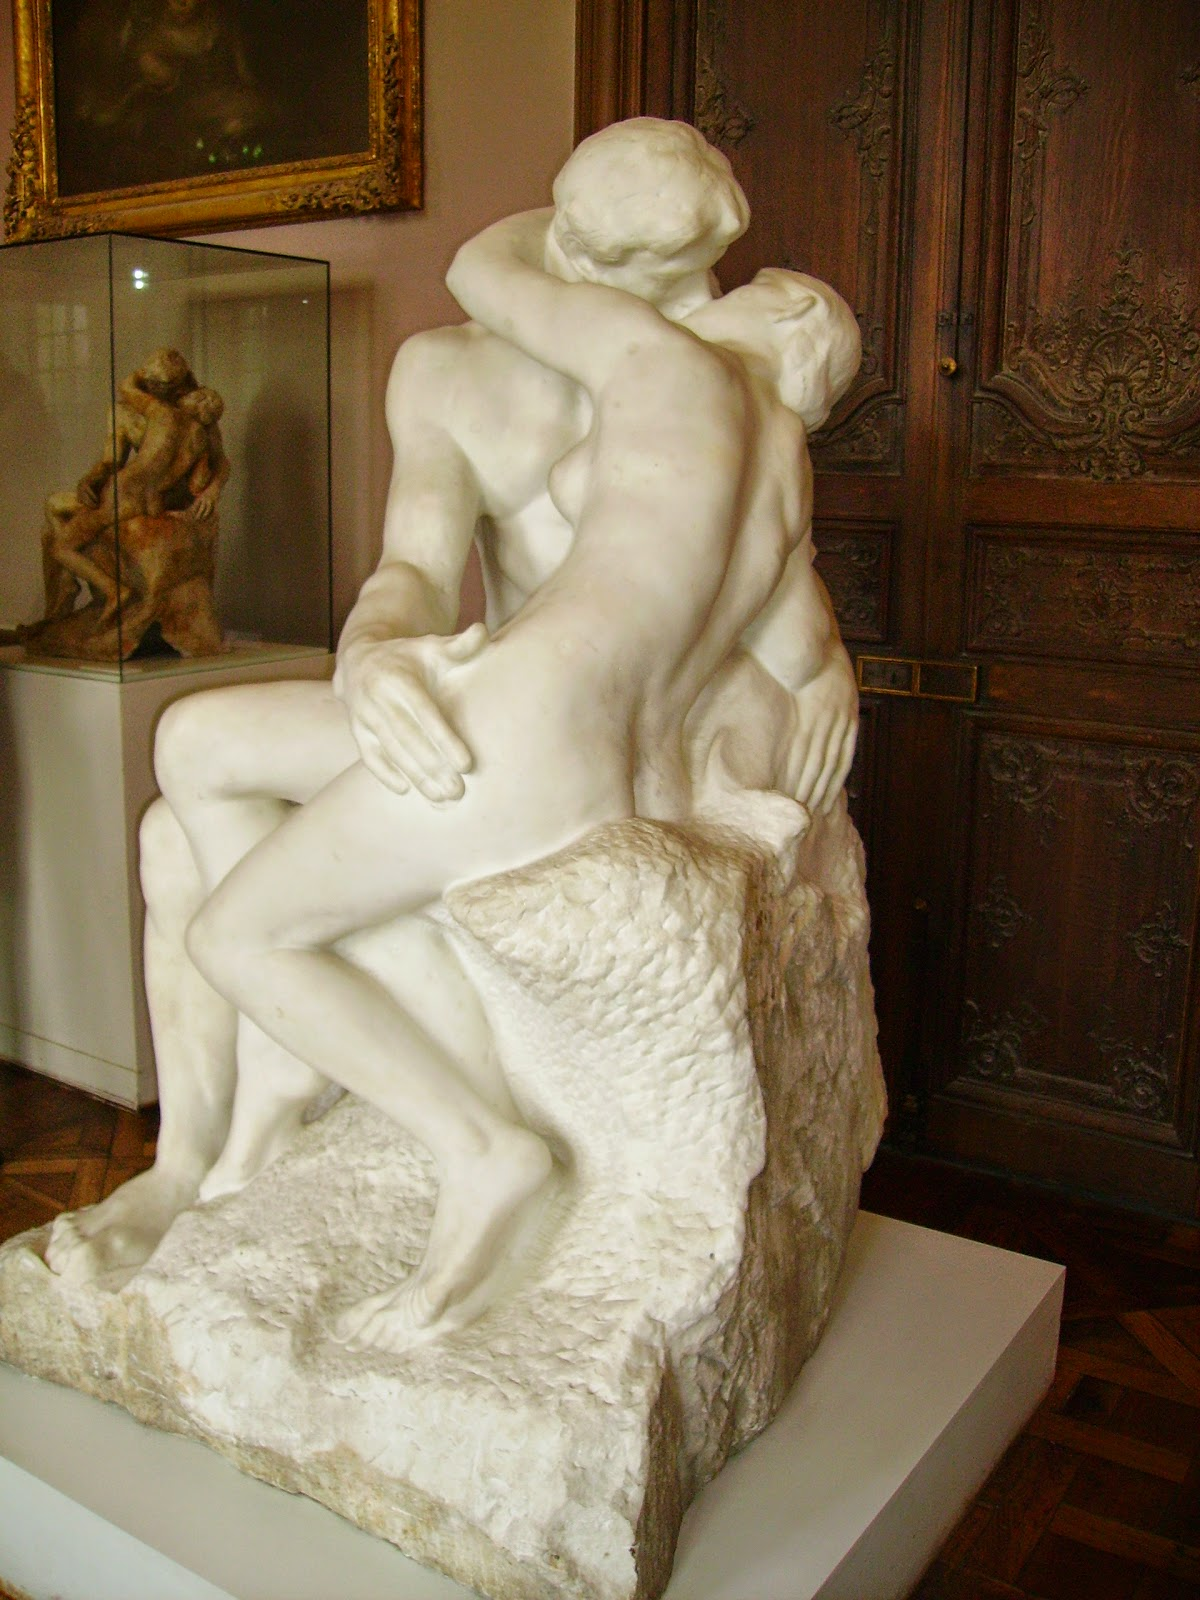 http://upload.wikimedia.org/wikipedia/commons/0/0e/Auguste_Rodin-The_Kiss-Rodin_Museum%2C_Paris.jpg